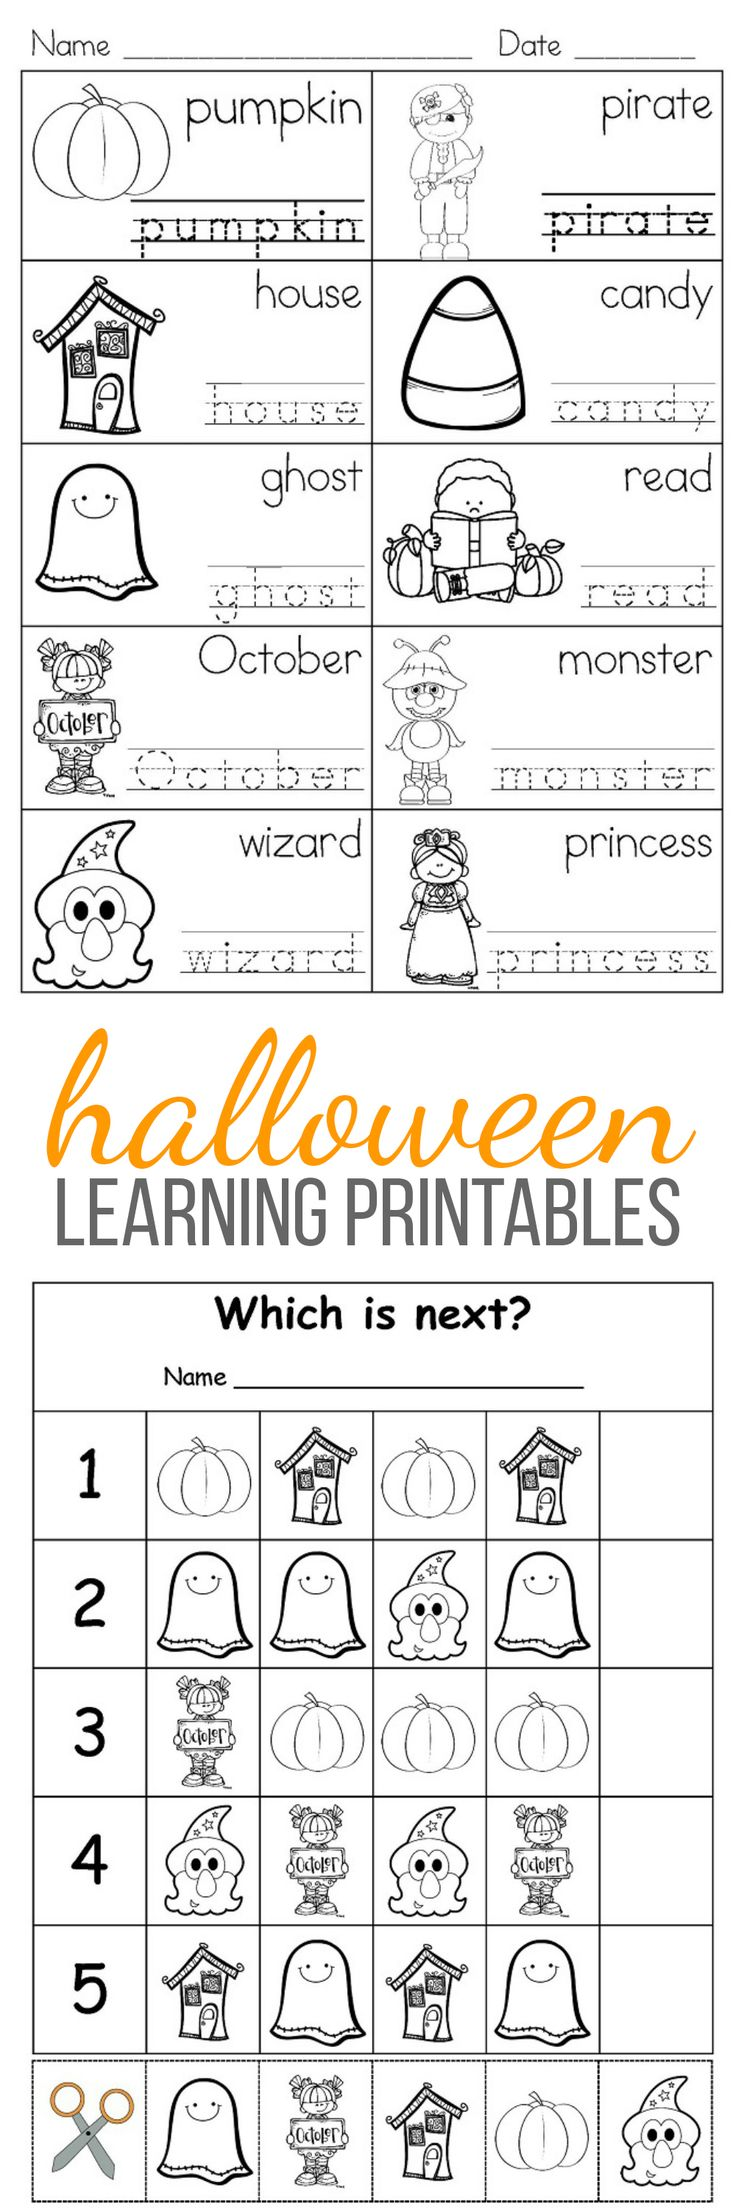 free printable halloween learning activities for kids perfect for preschool kindergarten and first grade - Halloween Fun Activities For Kids